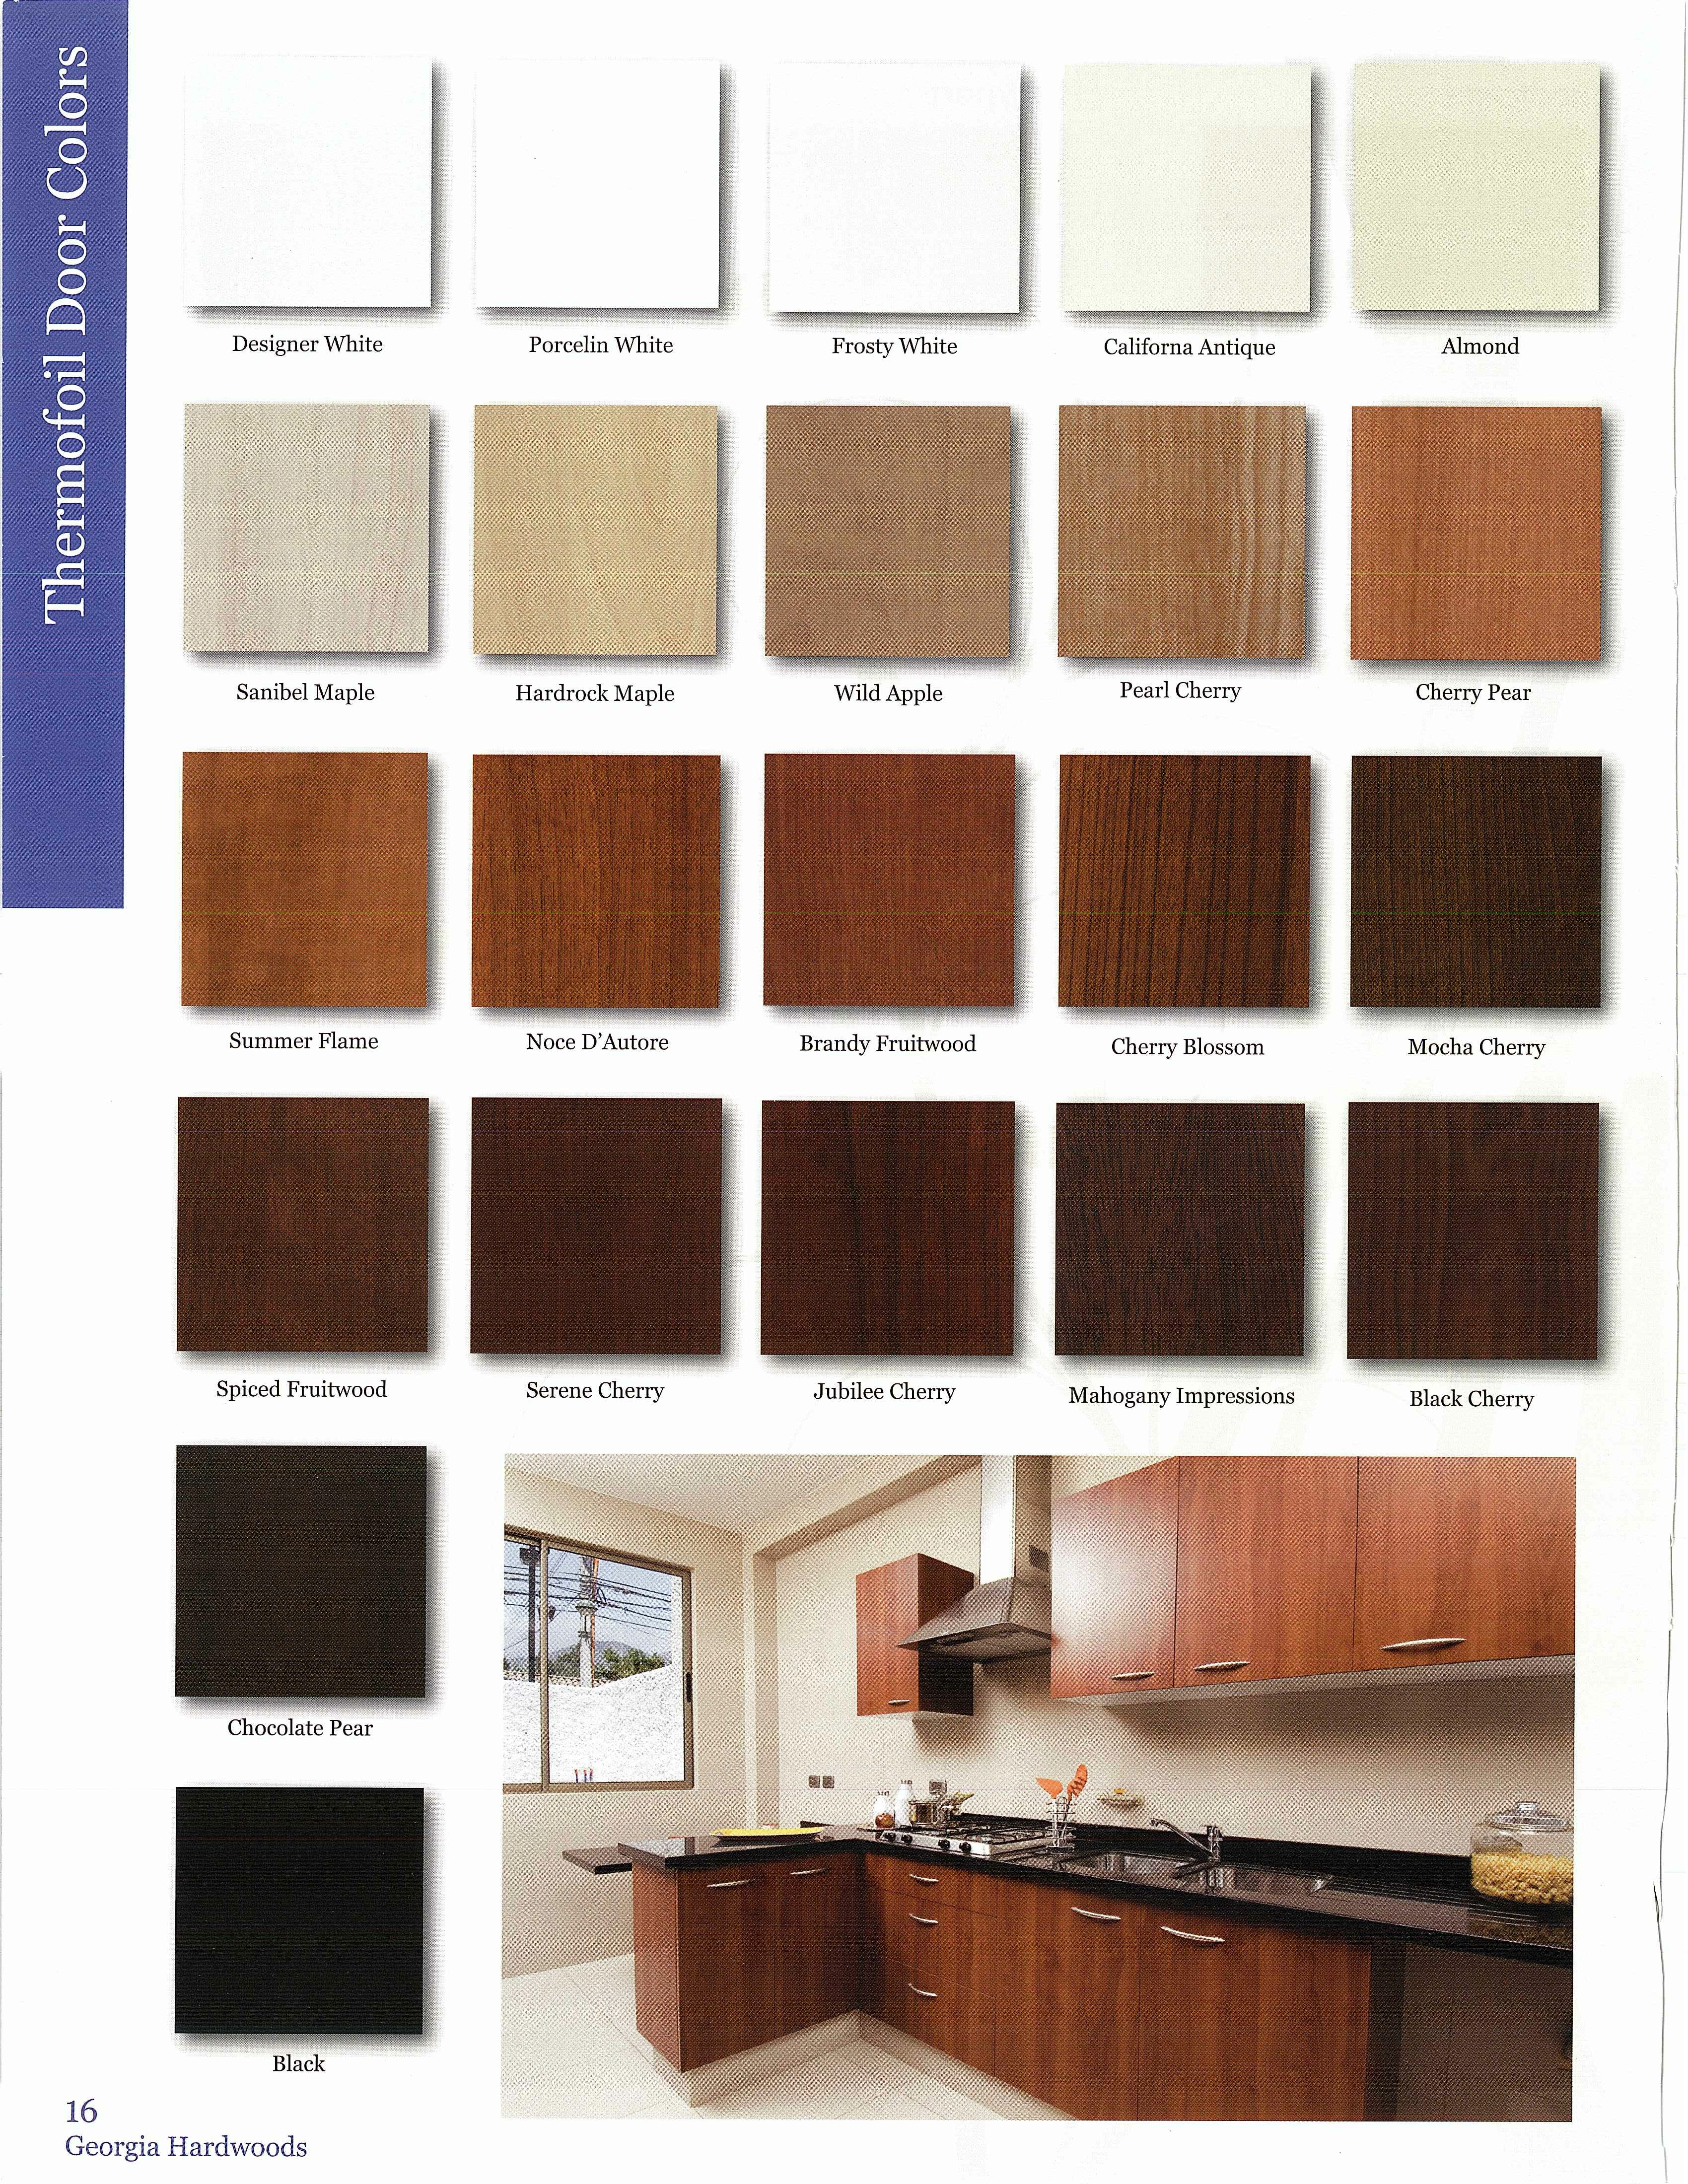 adalitecabinetscom cabinet color options - Cabinet Pics